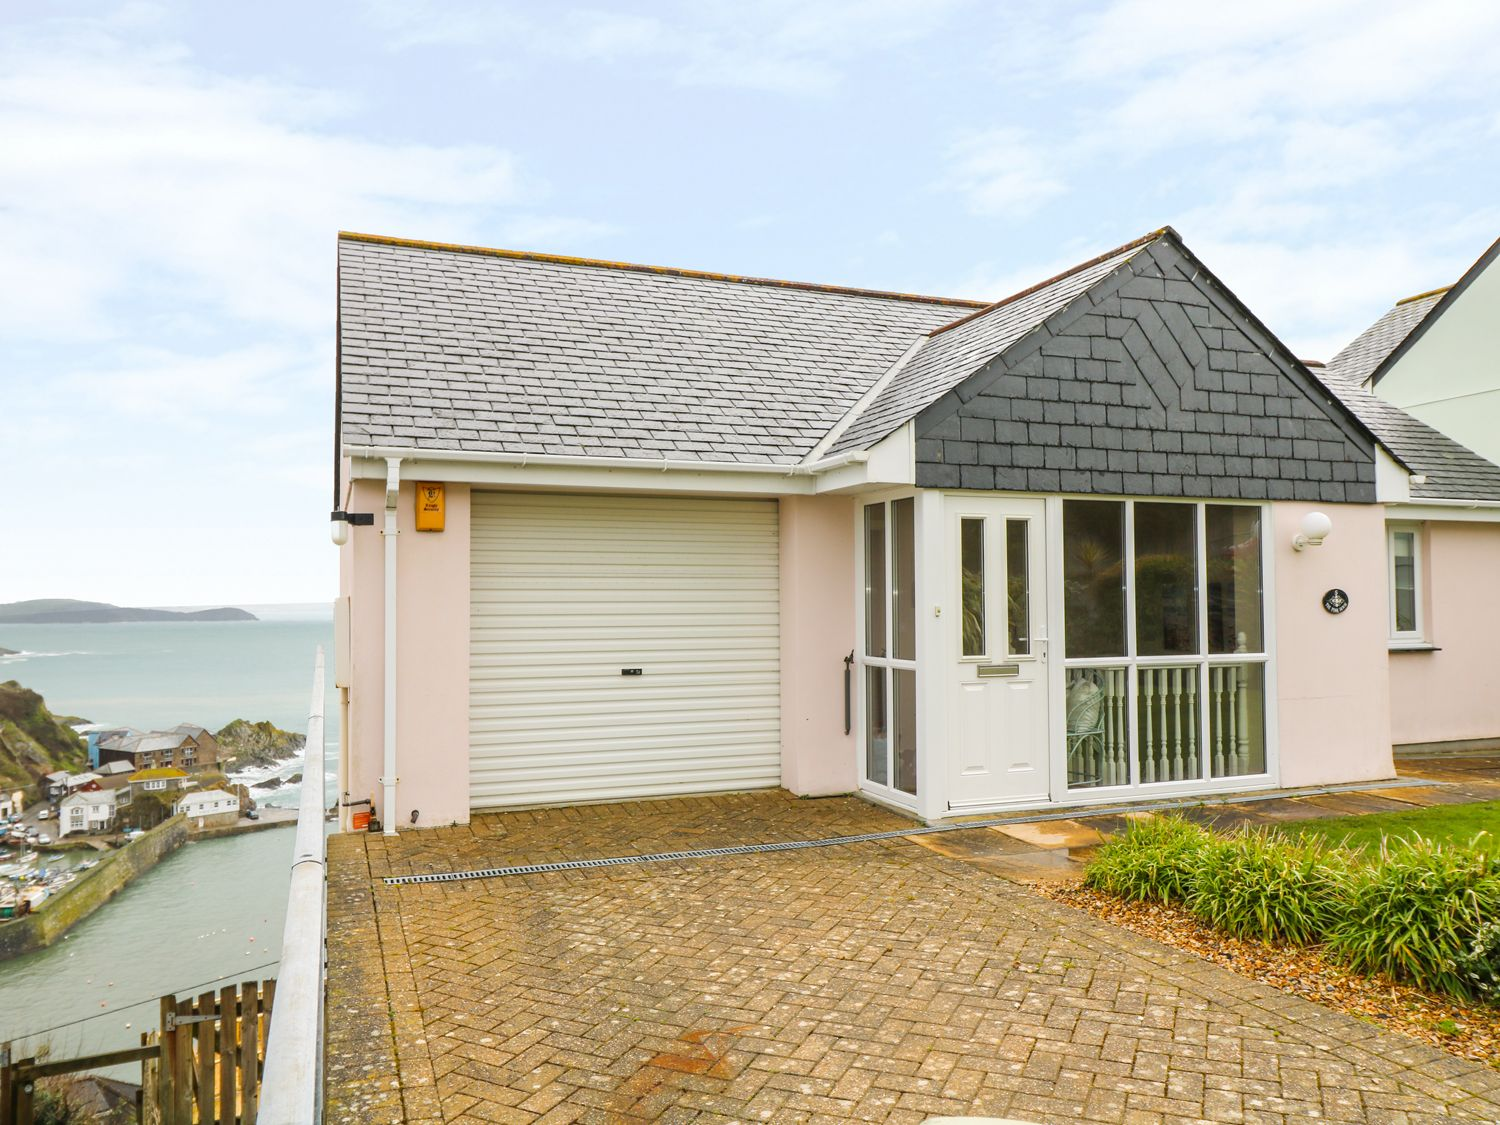 Pink House, Mevagissey, Cornwall